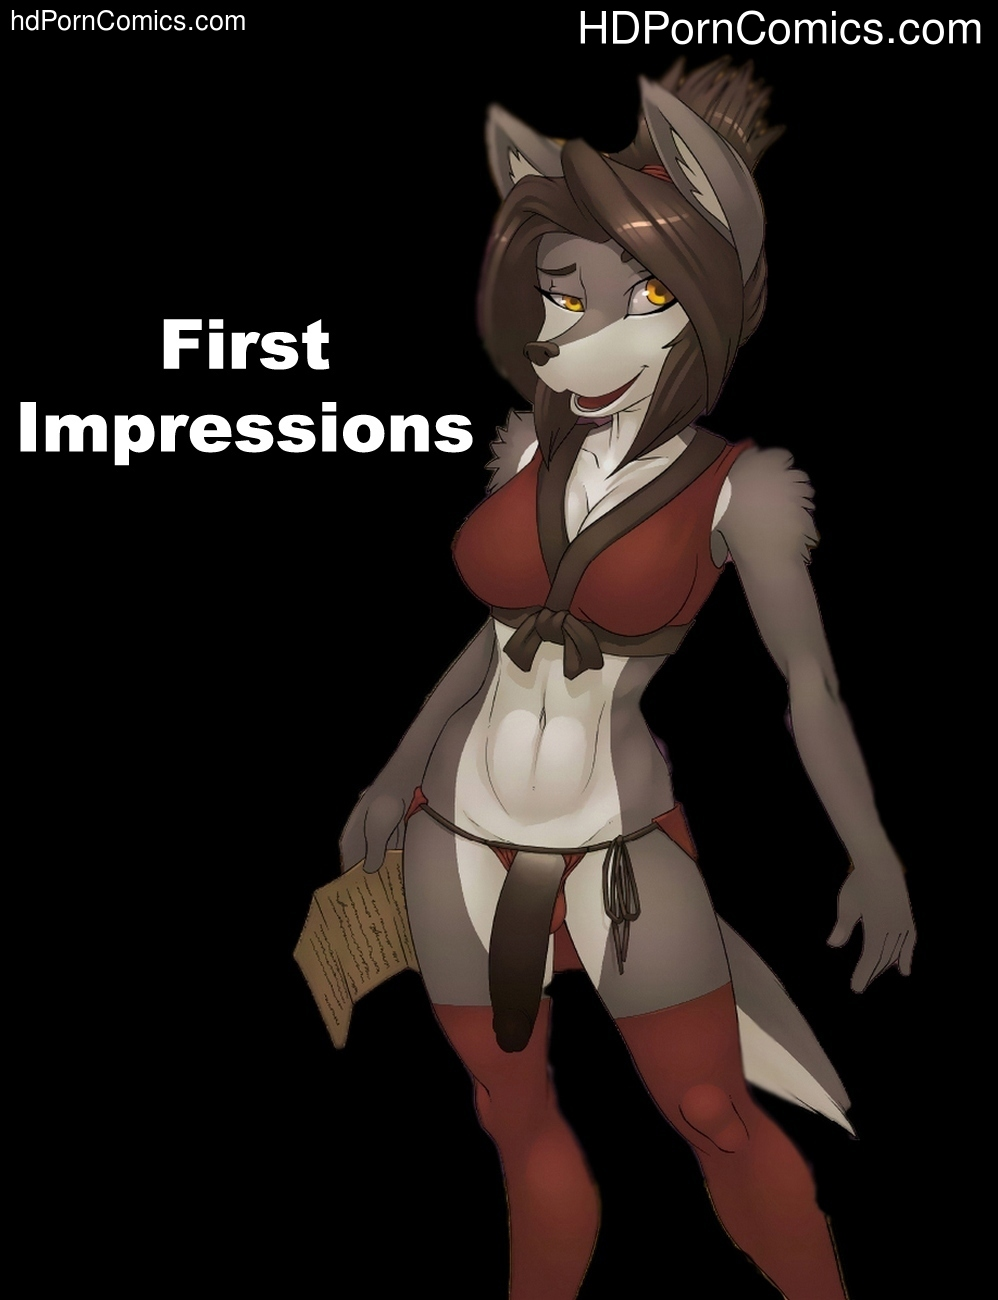 First Impressions Sex Comic